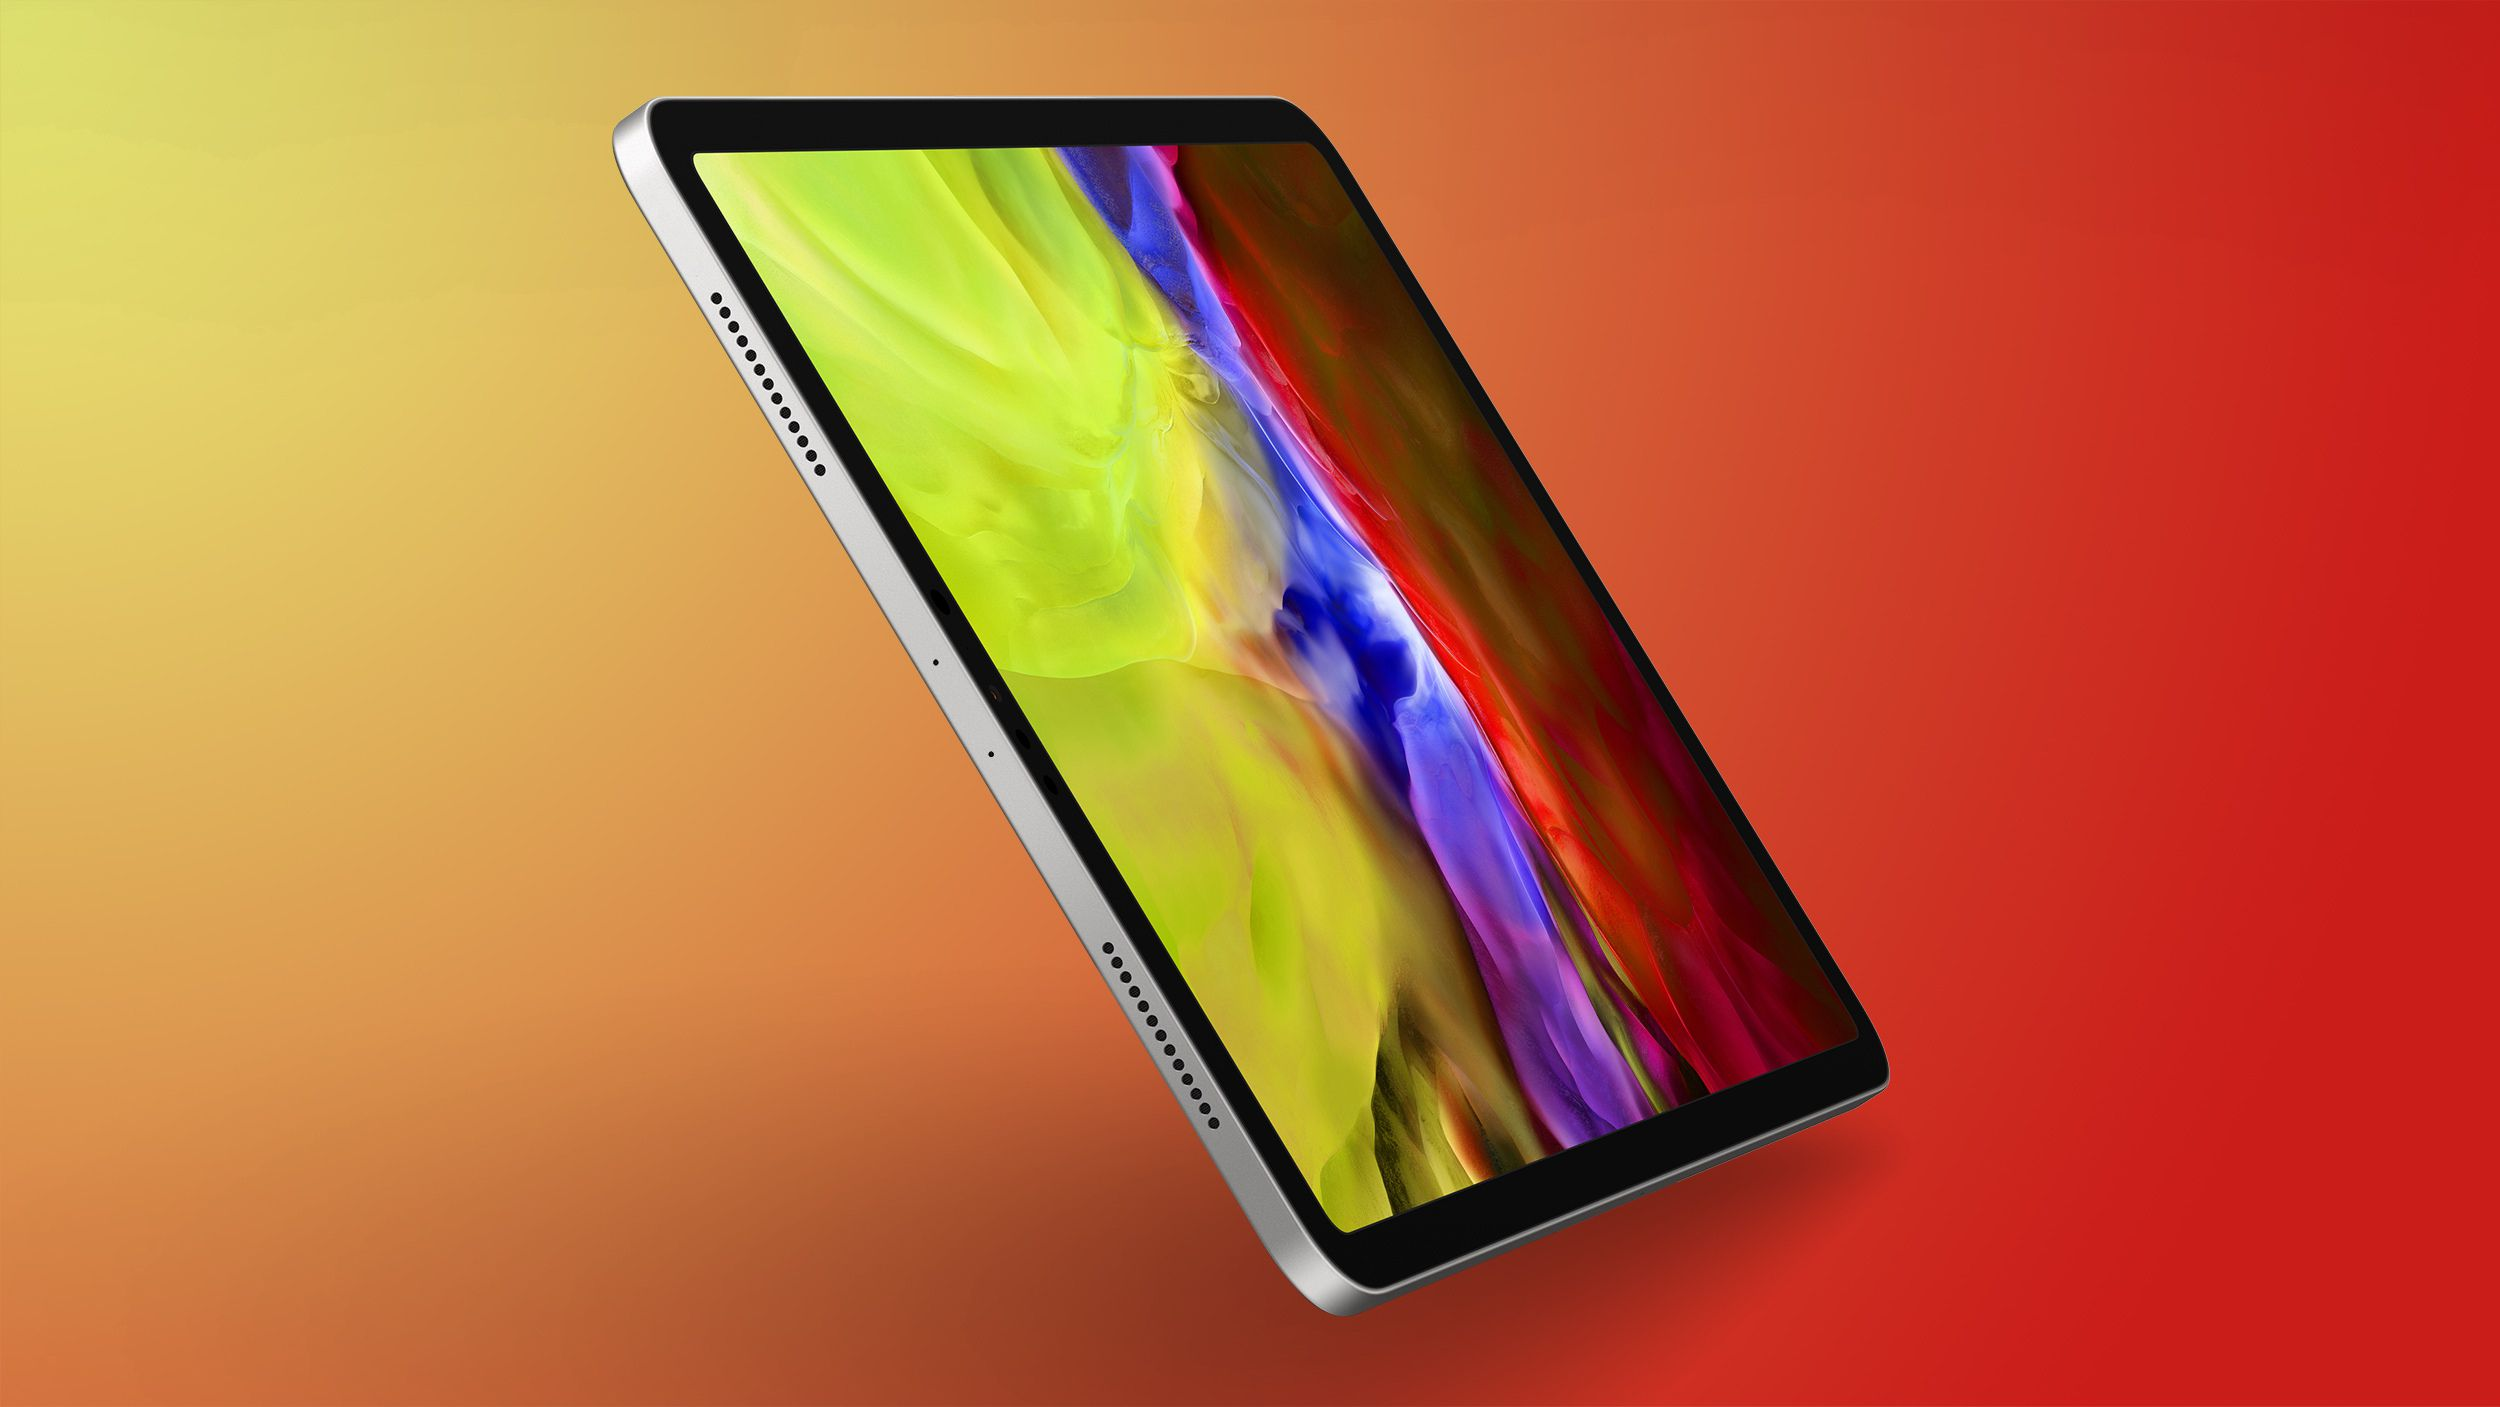 photo of Wedbush Analysts Say 'Spring Loaded' Event Will Debut New iPads With 'Modest Price Increase,' Along With 'a Few… image